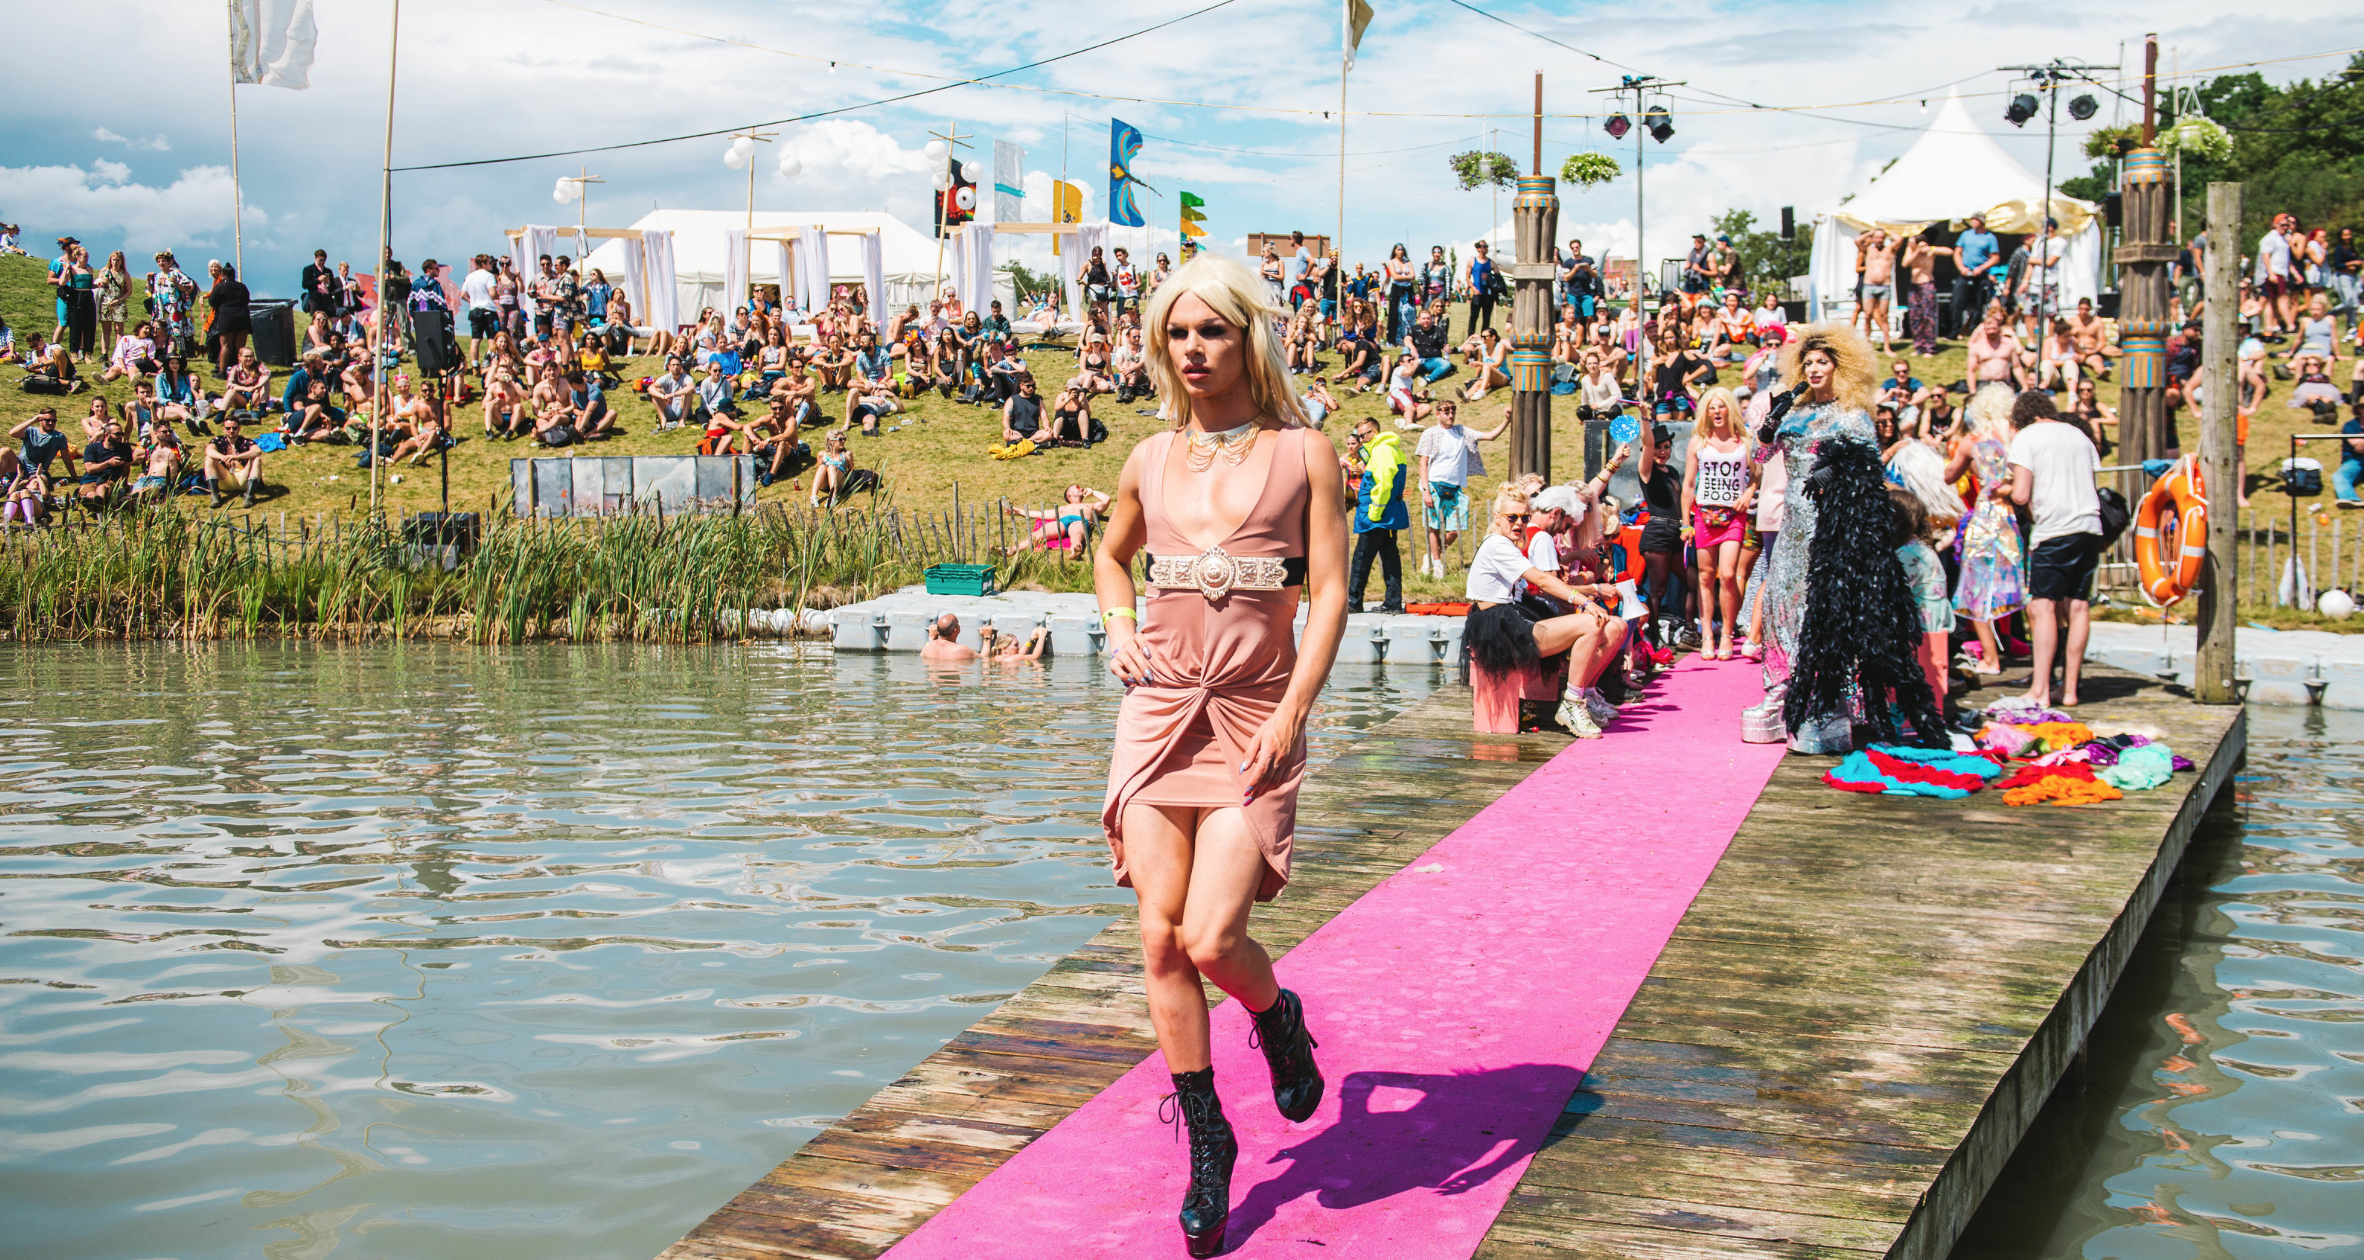 SGP's Next Top Model competition features men in drag strutting up the catwalk over the lake.